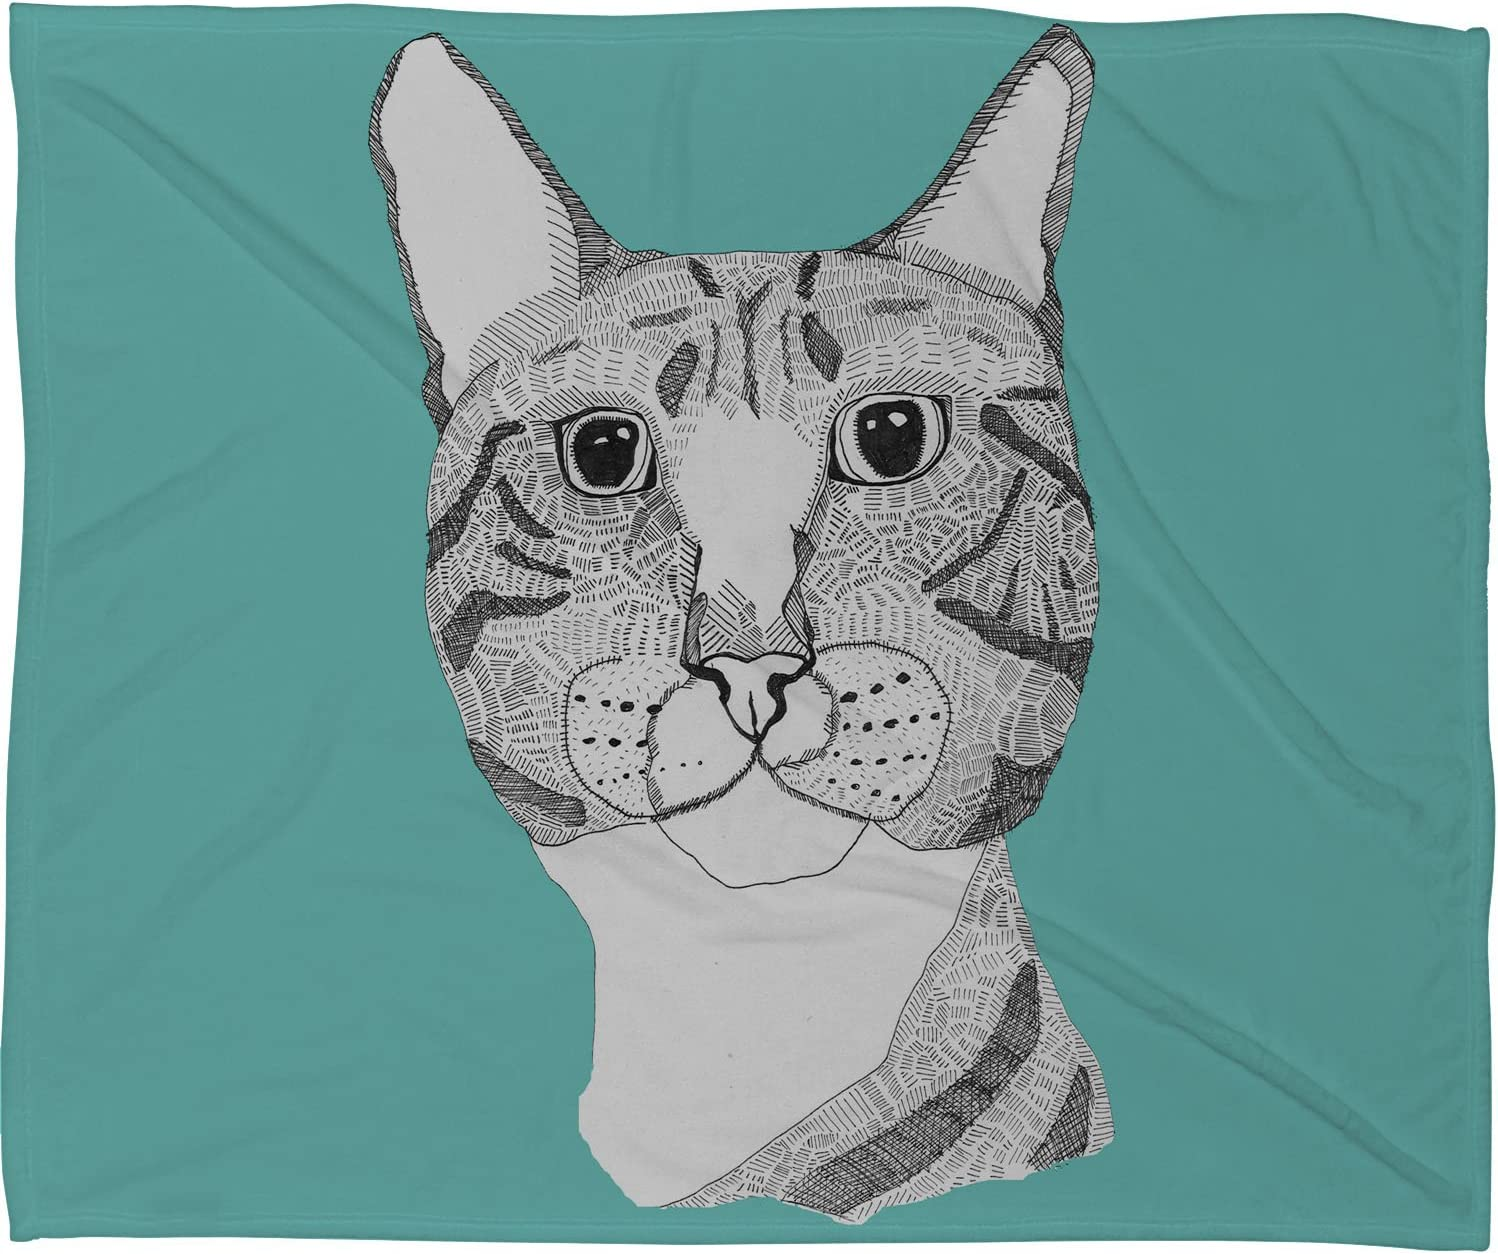 Deny Designs Casey Special price for a limited Beauty products time Rogers Tabby Cat Blanket Fleece 60 Throw 8 x